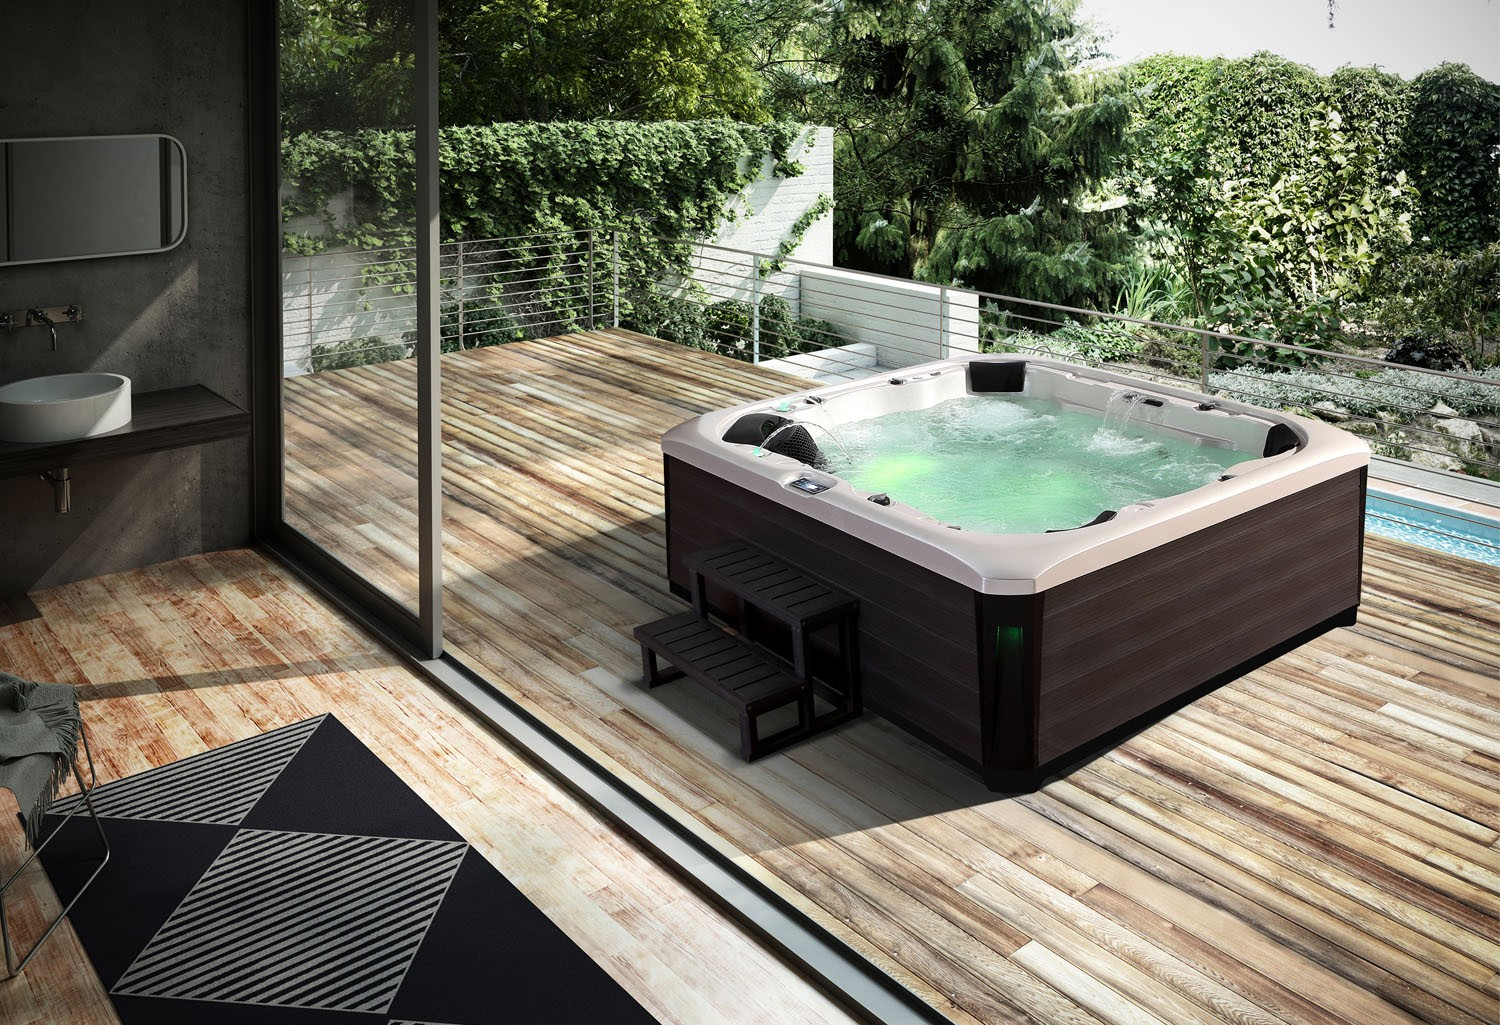 jacuzzi extrieur prix trendy vive les spas dkomaison jacuzzi encastrable exterieur prix with. Black Bedroom Furniture Sets. Home Design Ideas